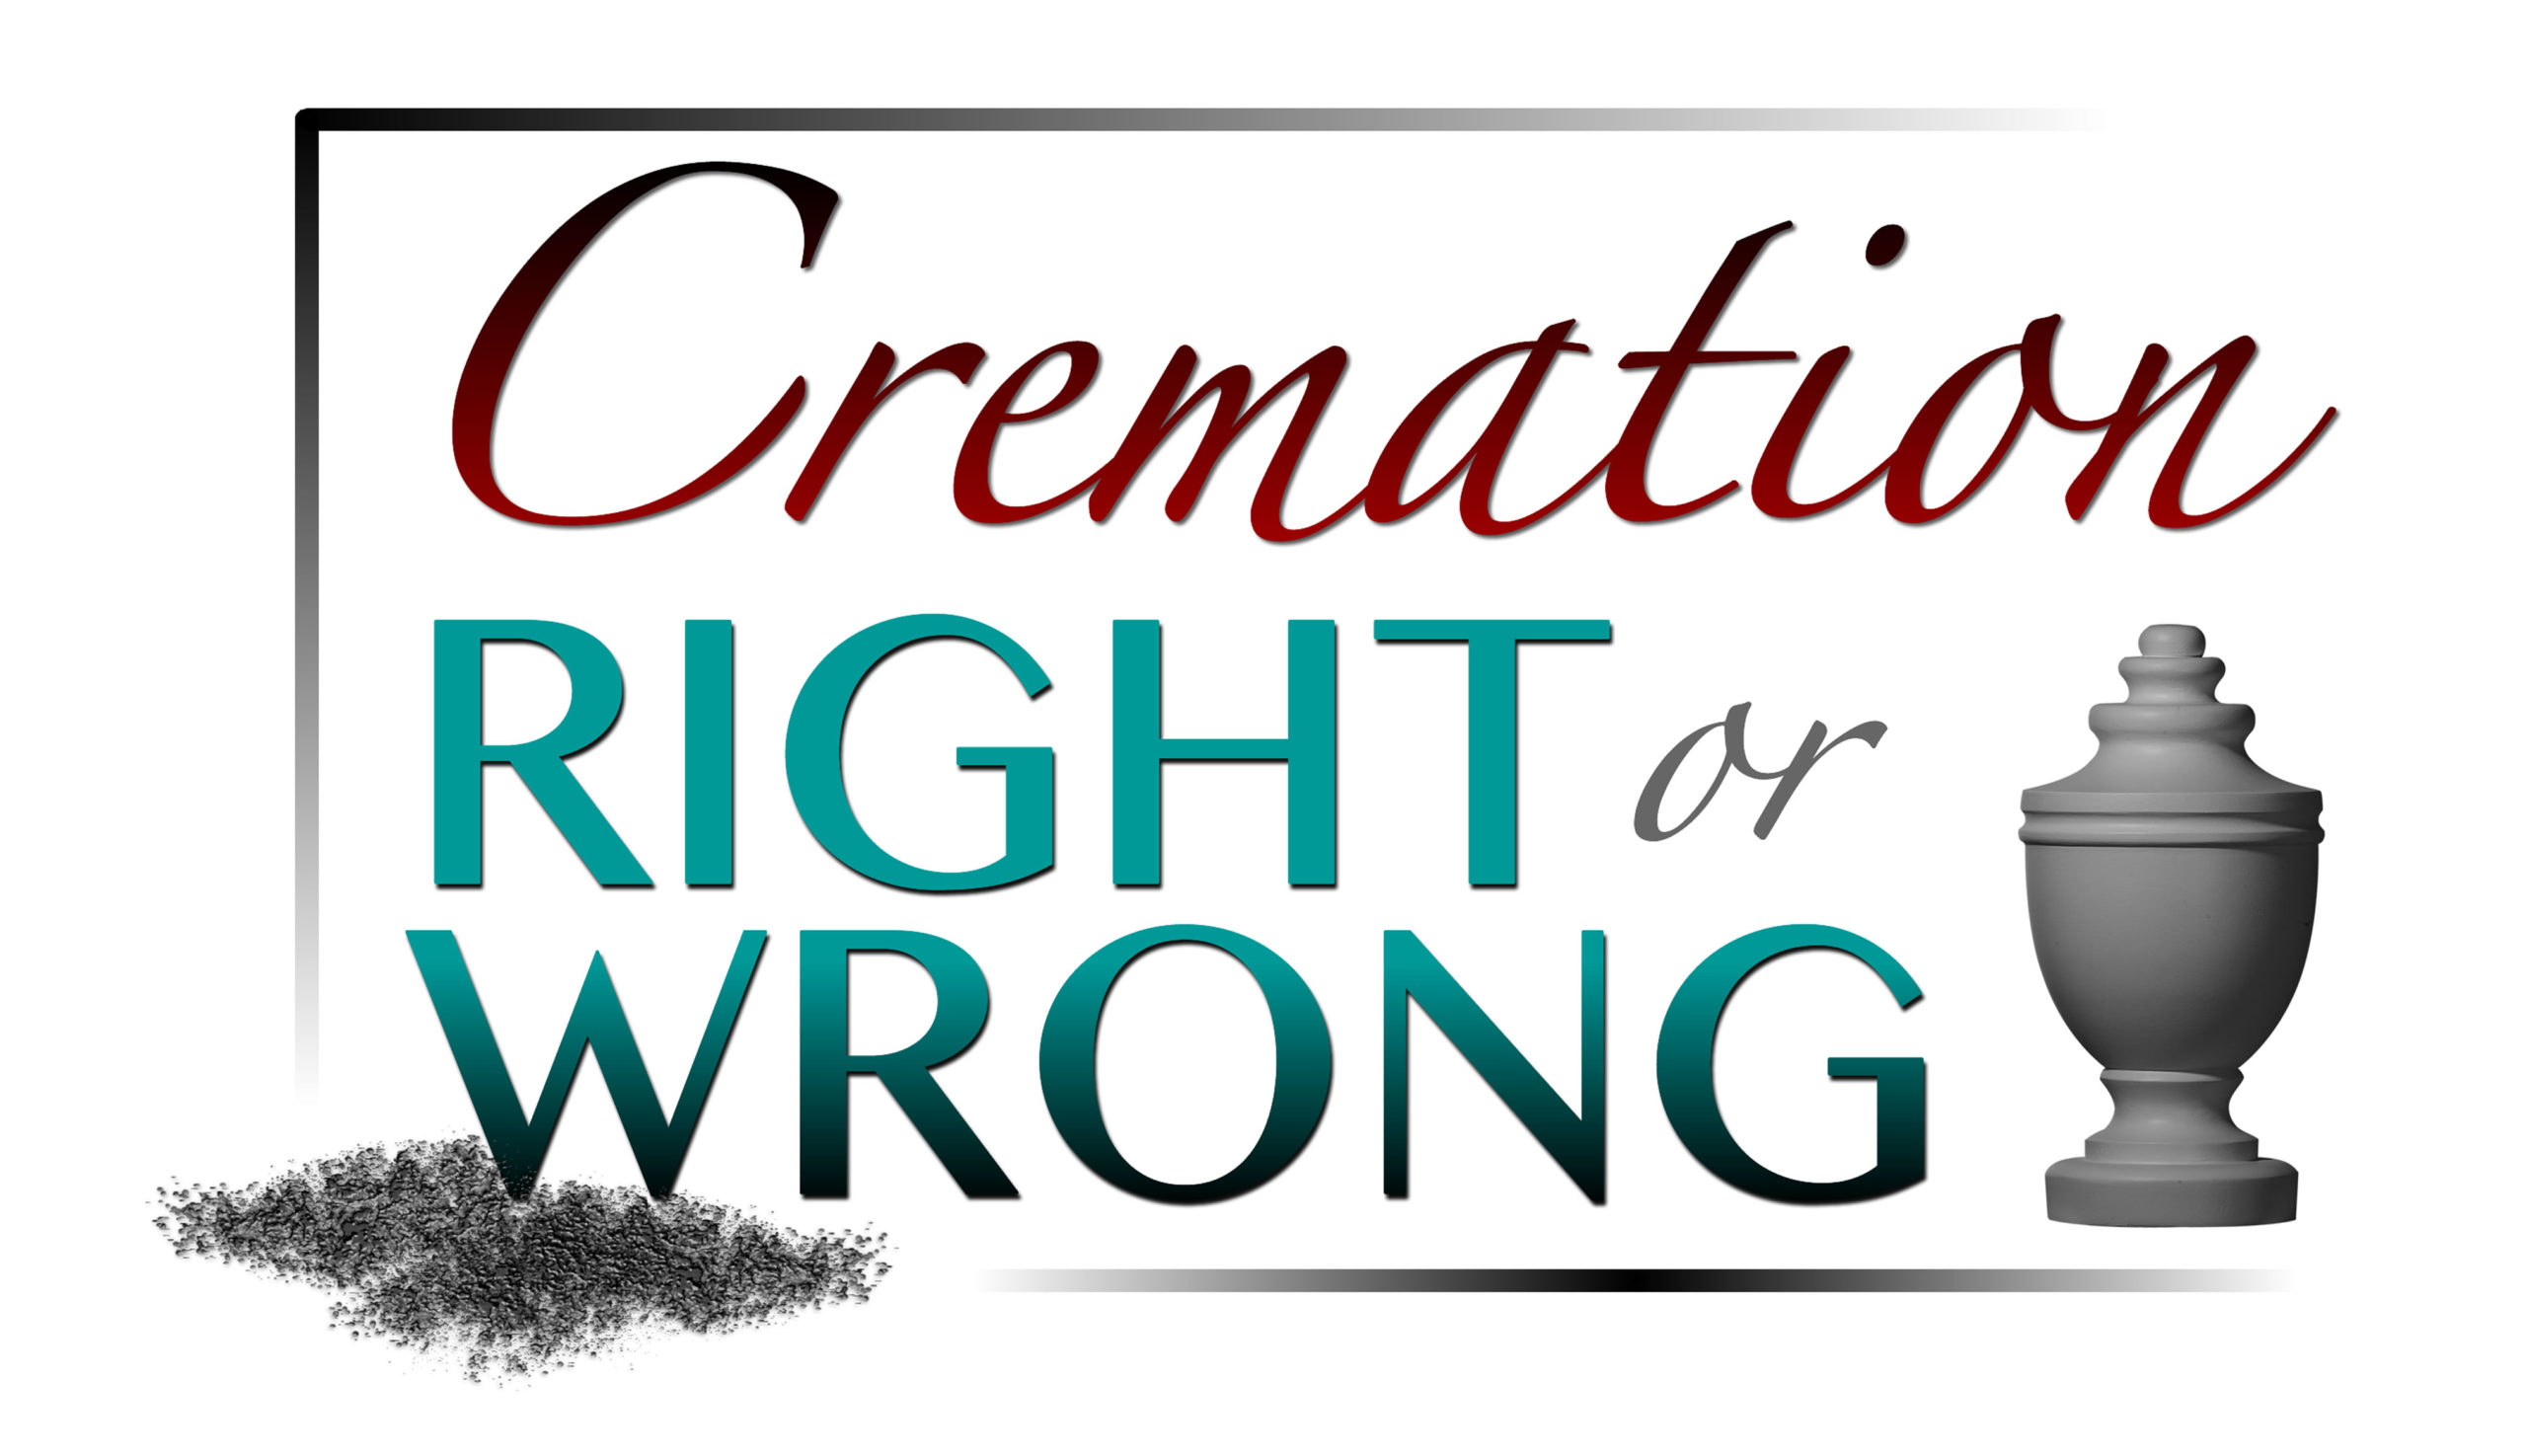 Cremation: Right or Wrong Graphic